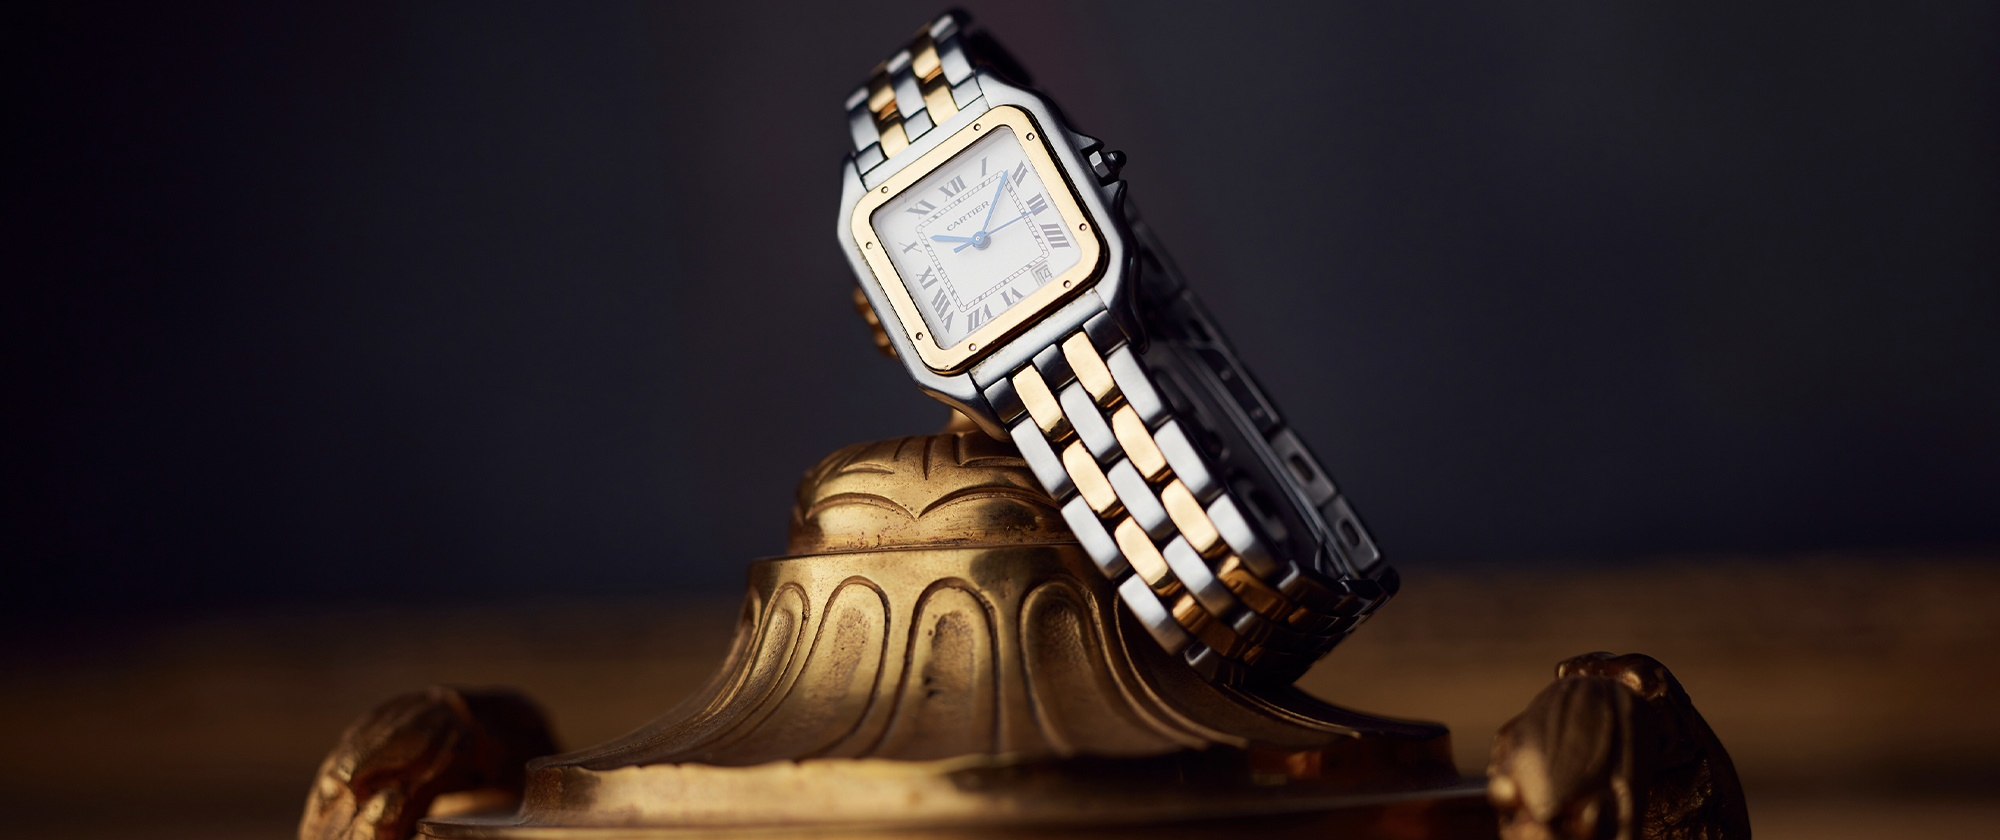 Cartier: Defining a Classic